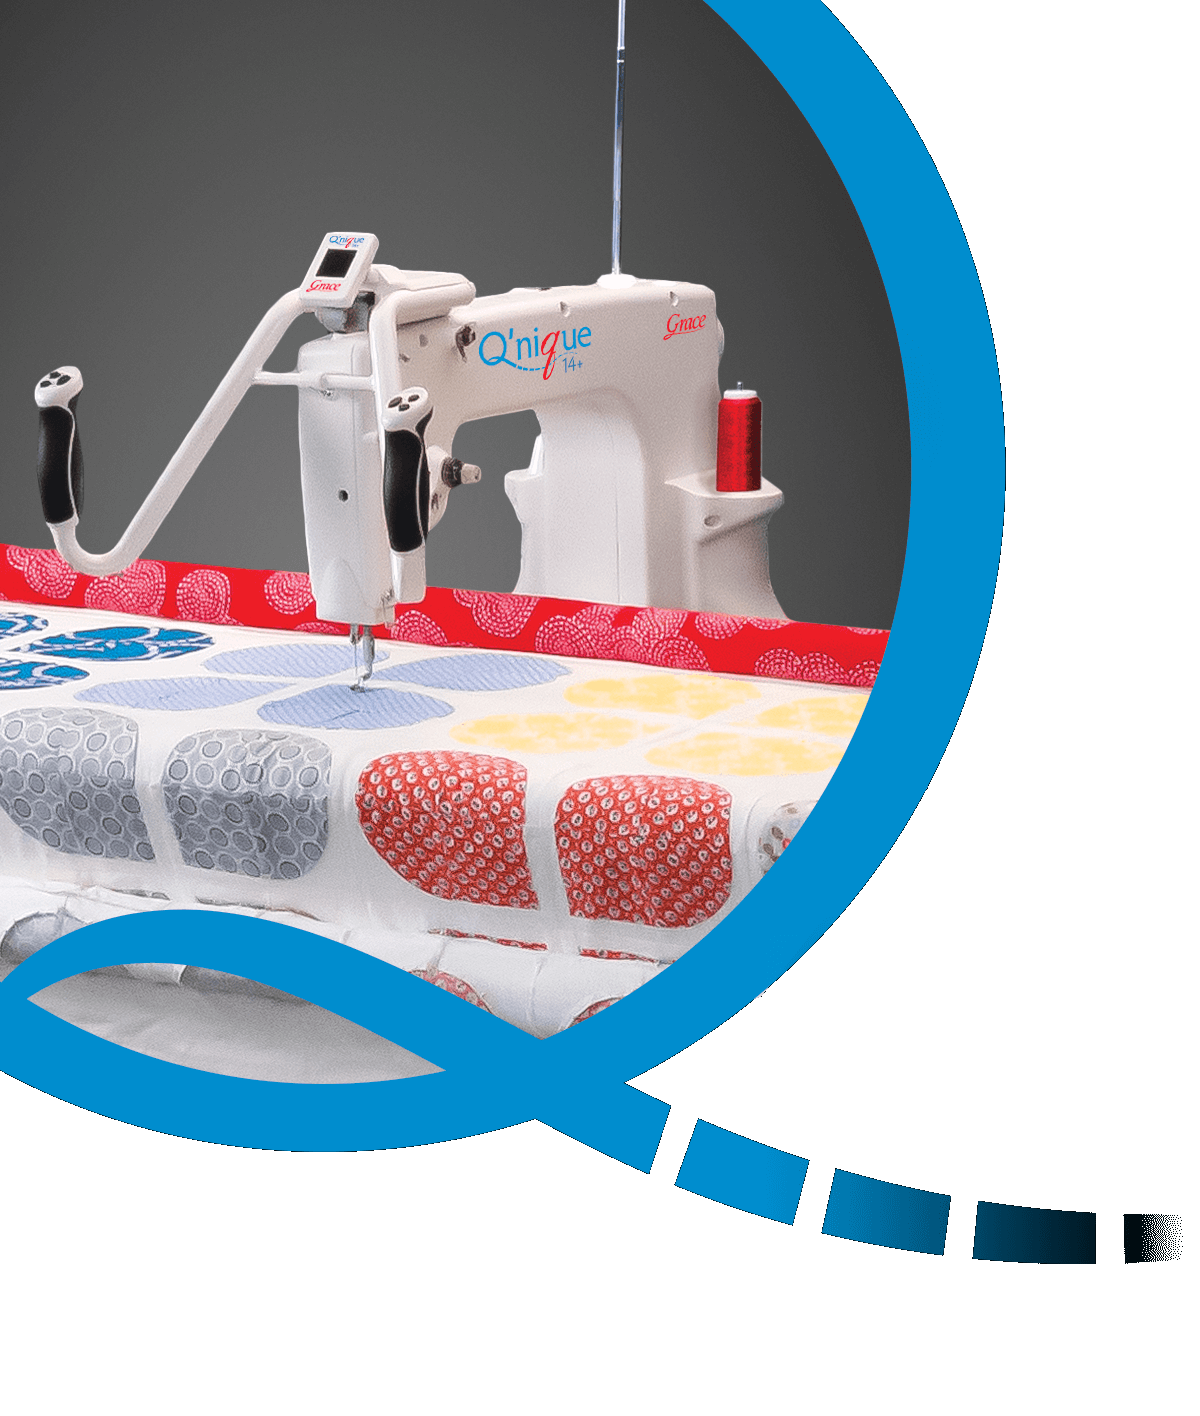 QNIQUE 15 Quilting Machine With Continuum King Frame